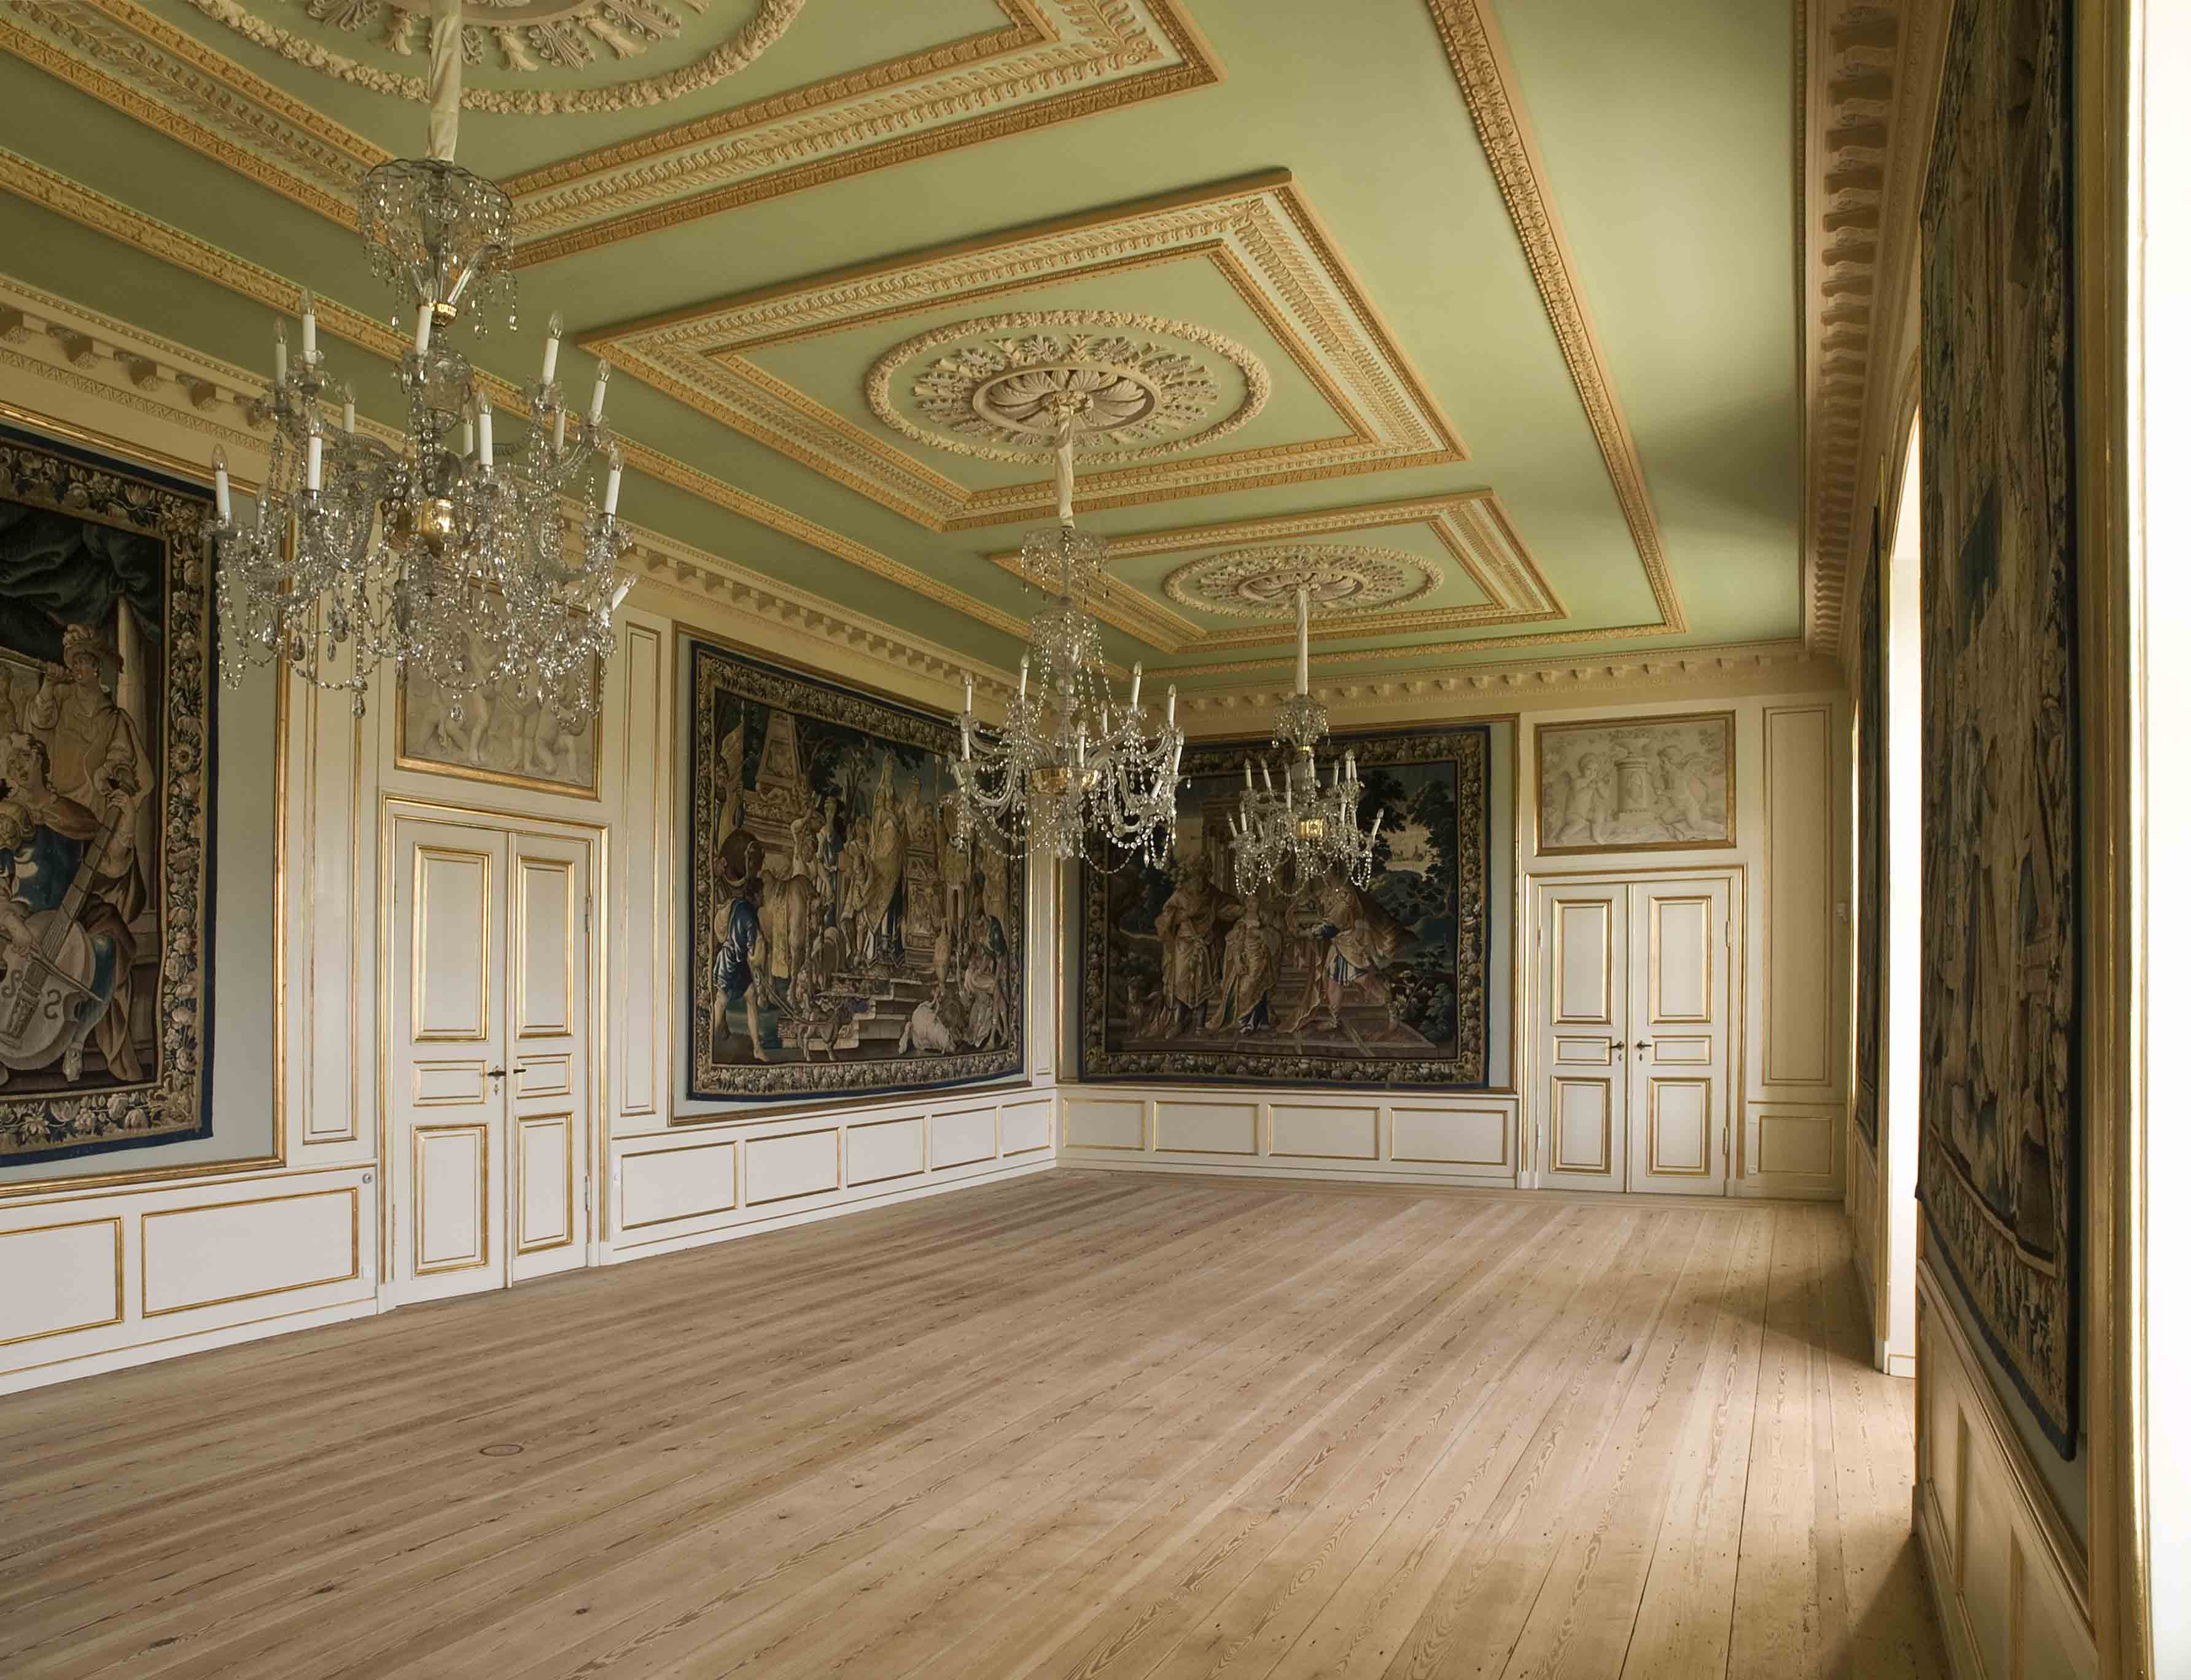 The Colours Of The Empire Style Interior In Frederik VIIIu0027s Palace At  Amalienborg   The Royal Danish Collection